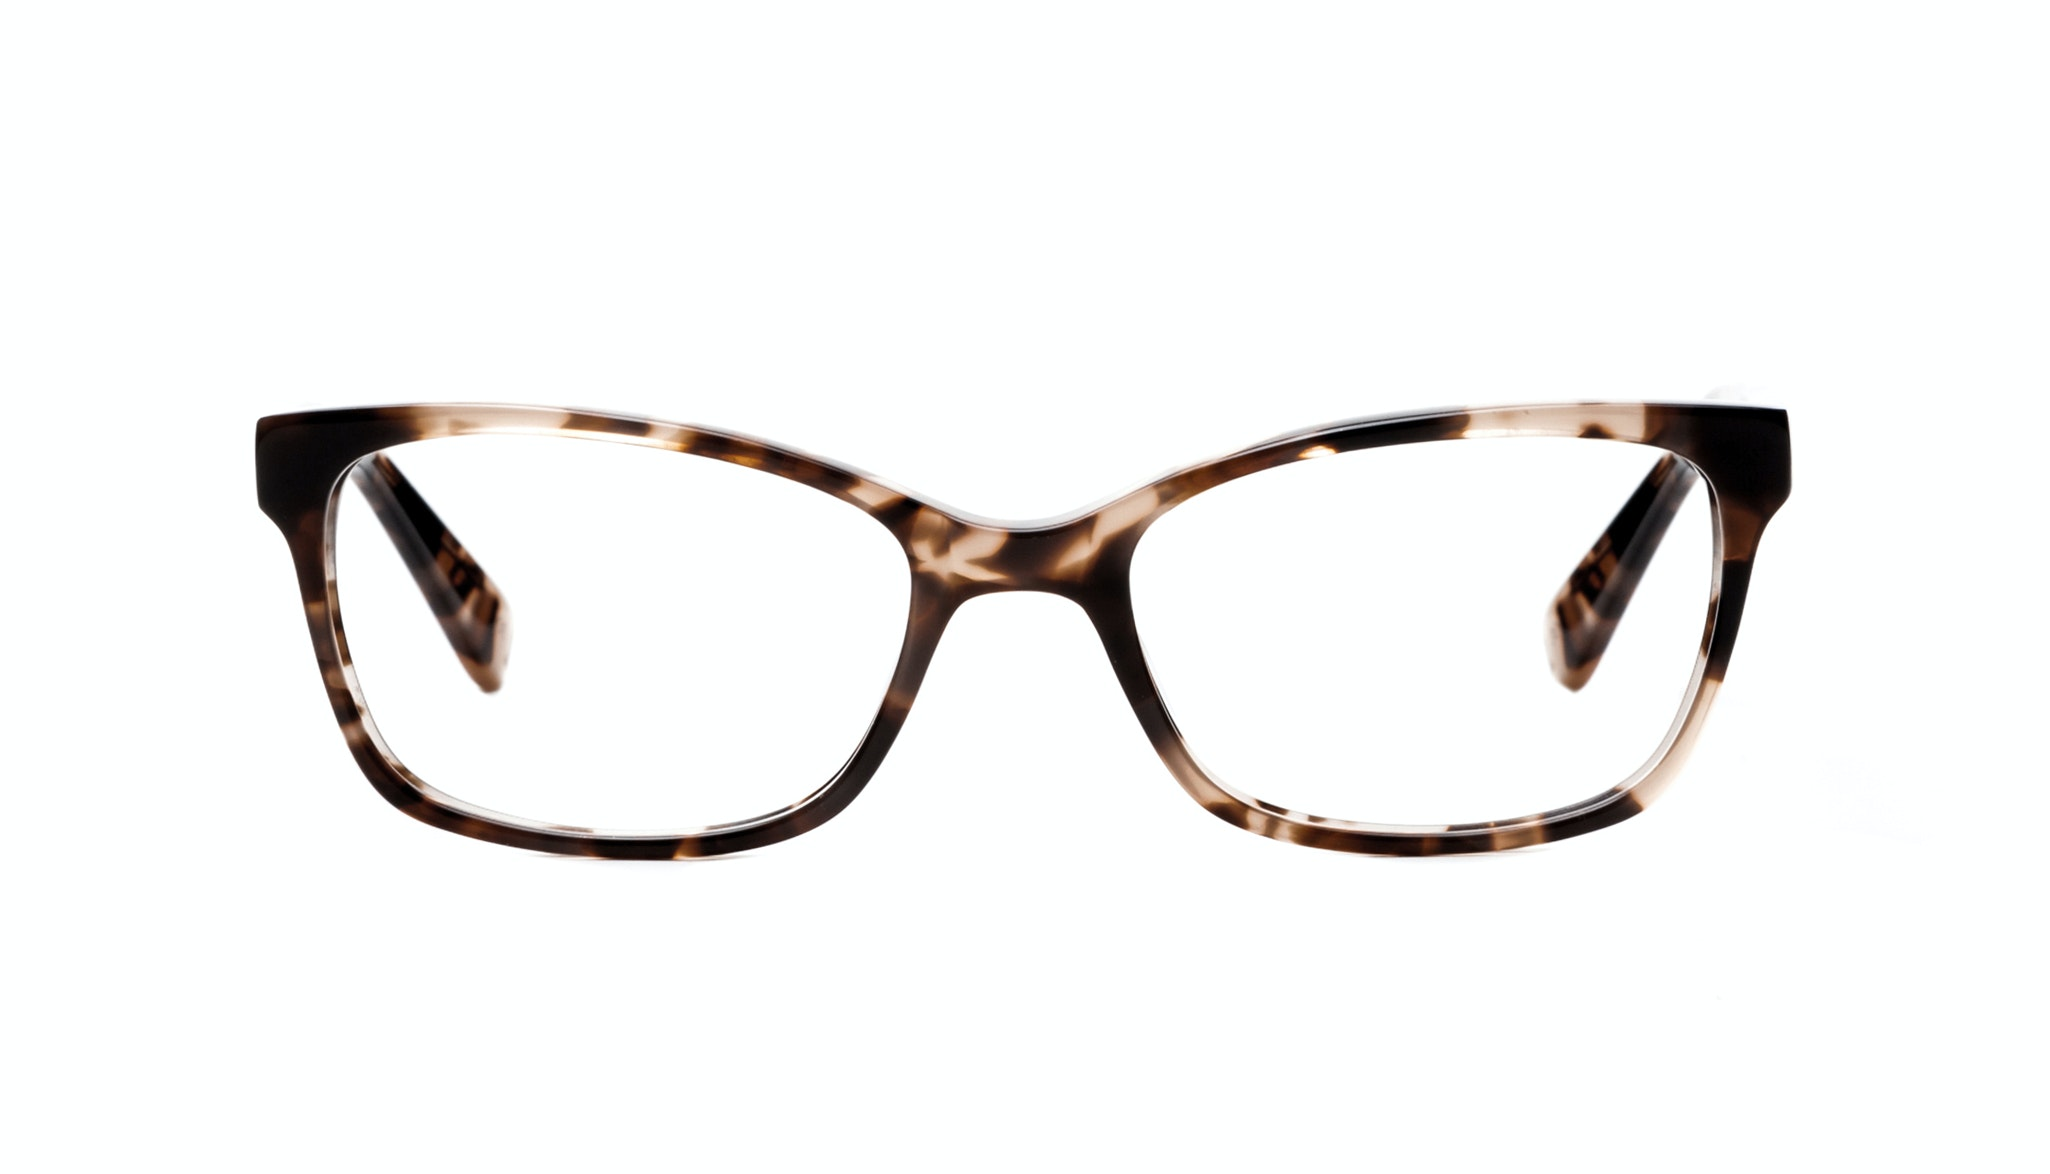 Affordable Fashion Glasses Cat Eye Rectangle Eyeglasses Women Comet Pink Tortoise Front